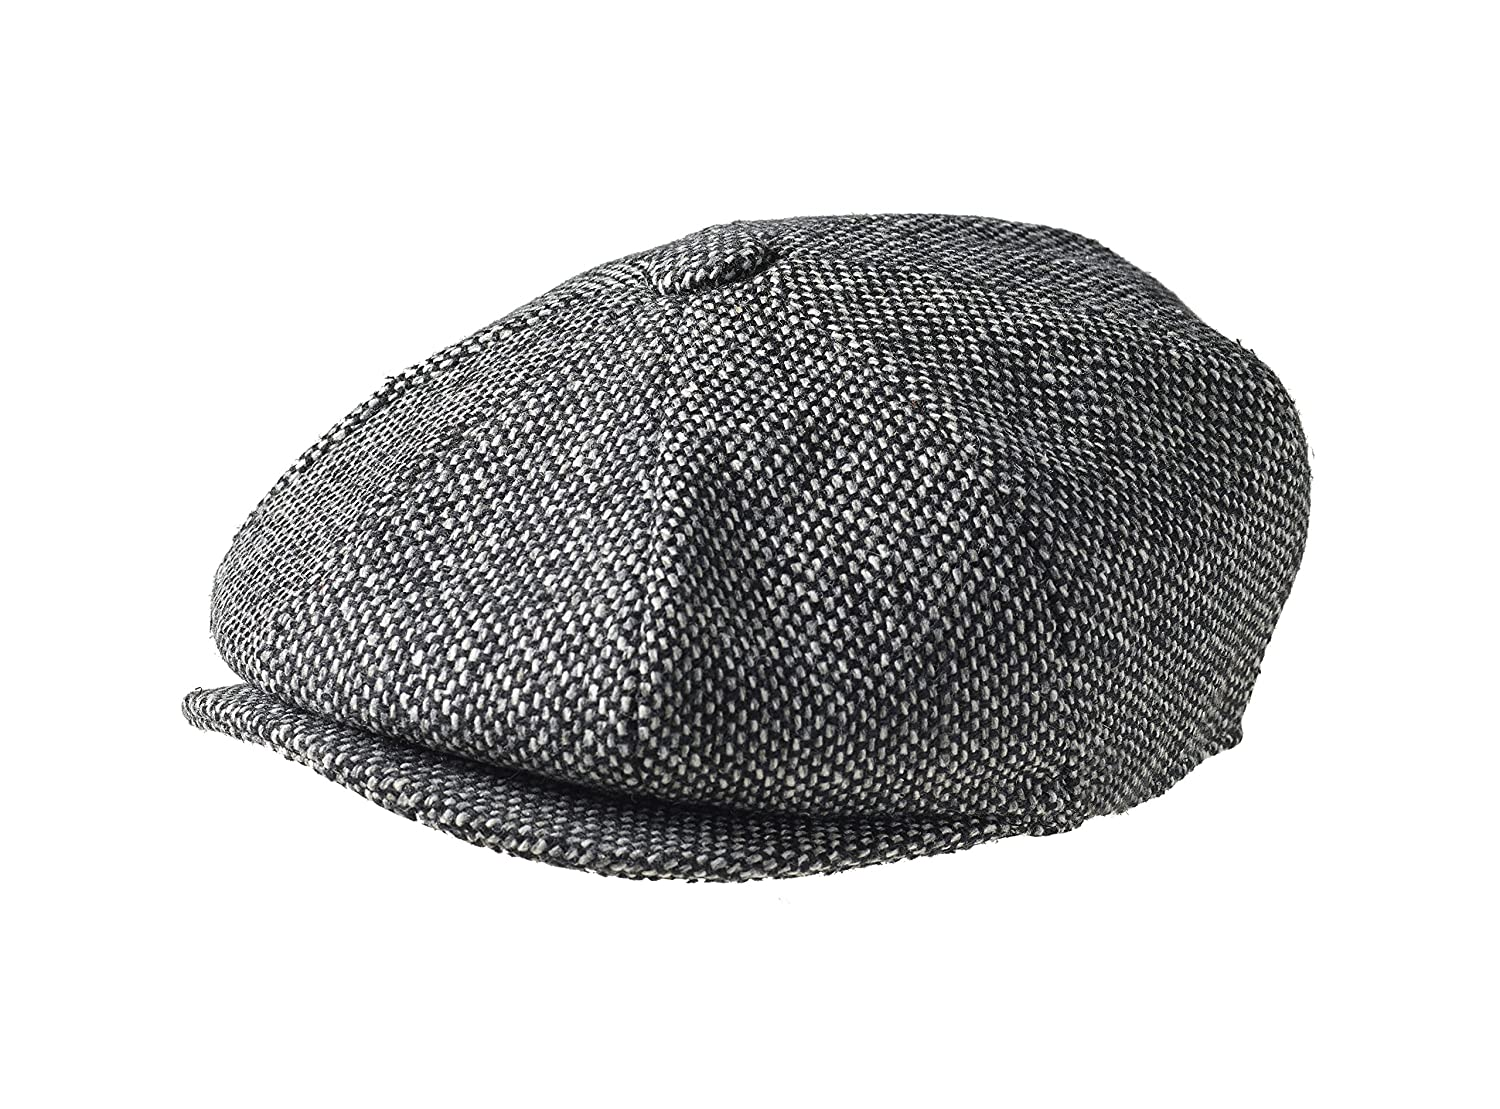 e1dedcb58a1 Peaky Blinders 8 Piece  Newsboy  Style Flat Cap -100% Wool Fabric  Variations  Amazon.co.uk  Clothing